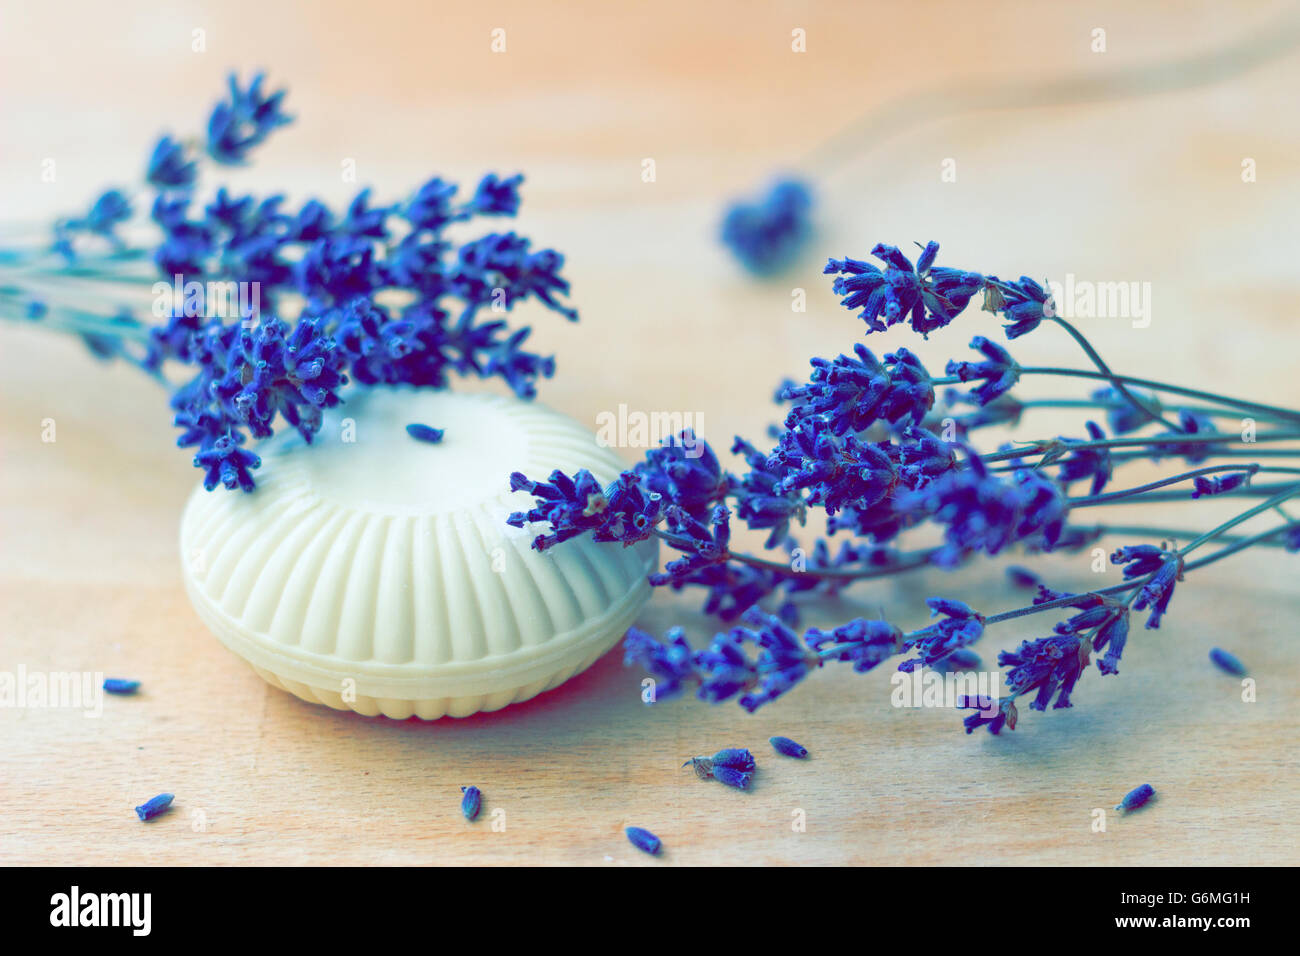 Soap and lavender flowers - Stock Image